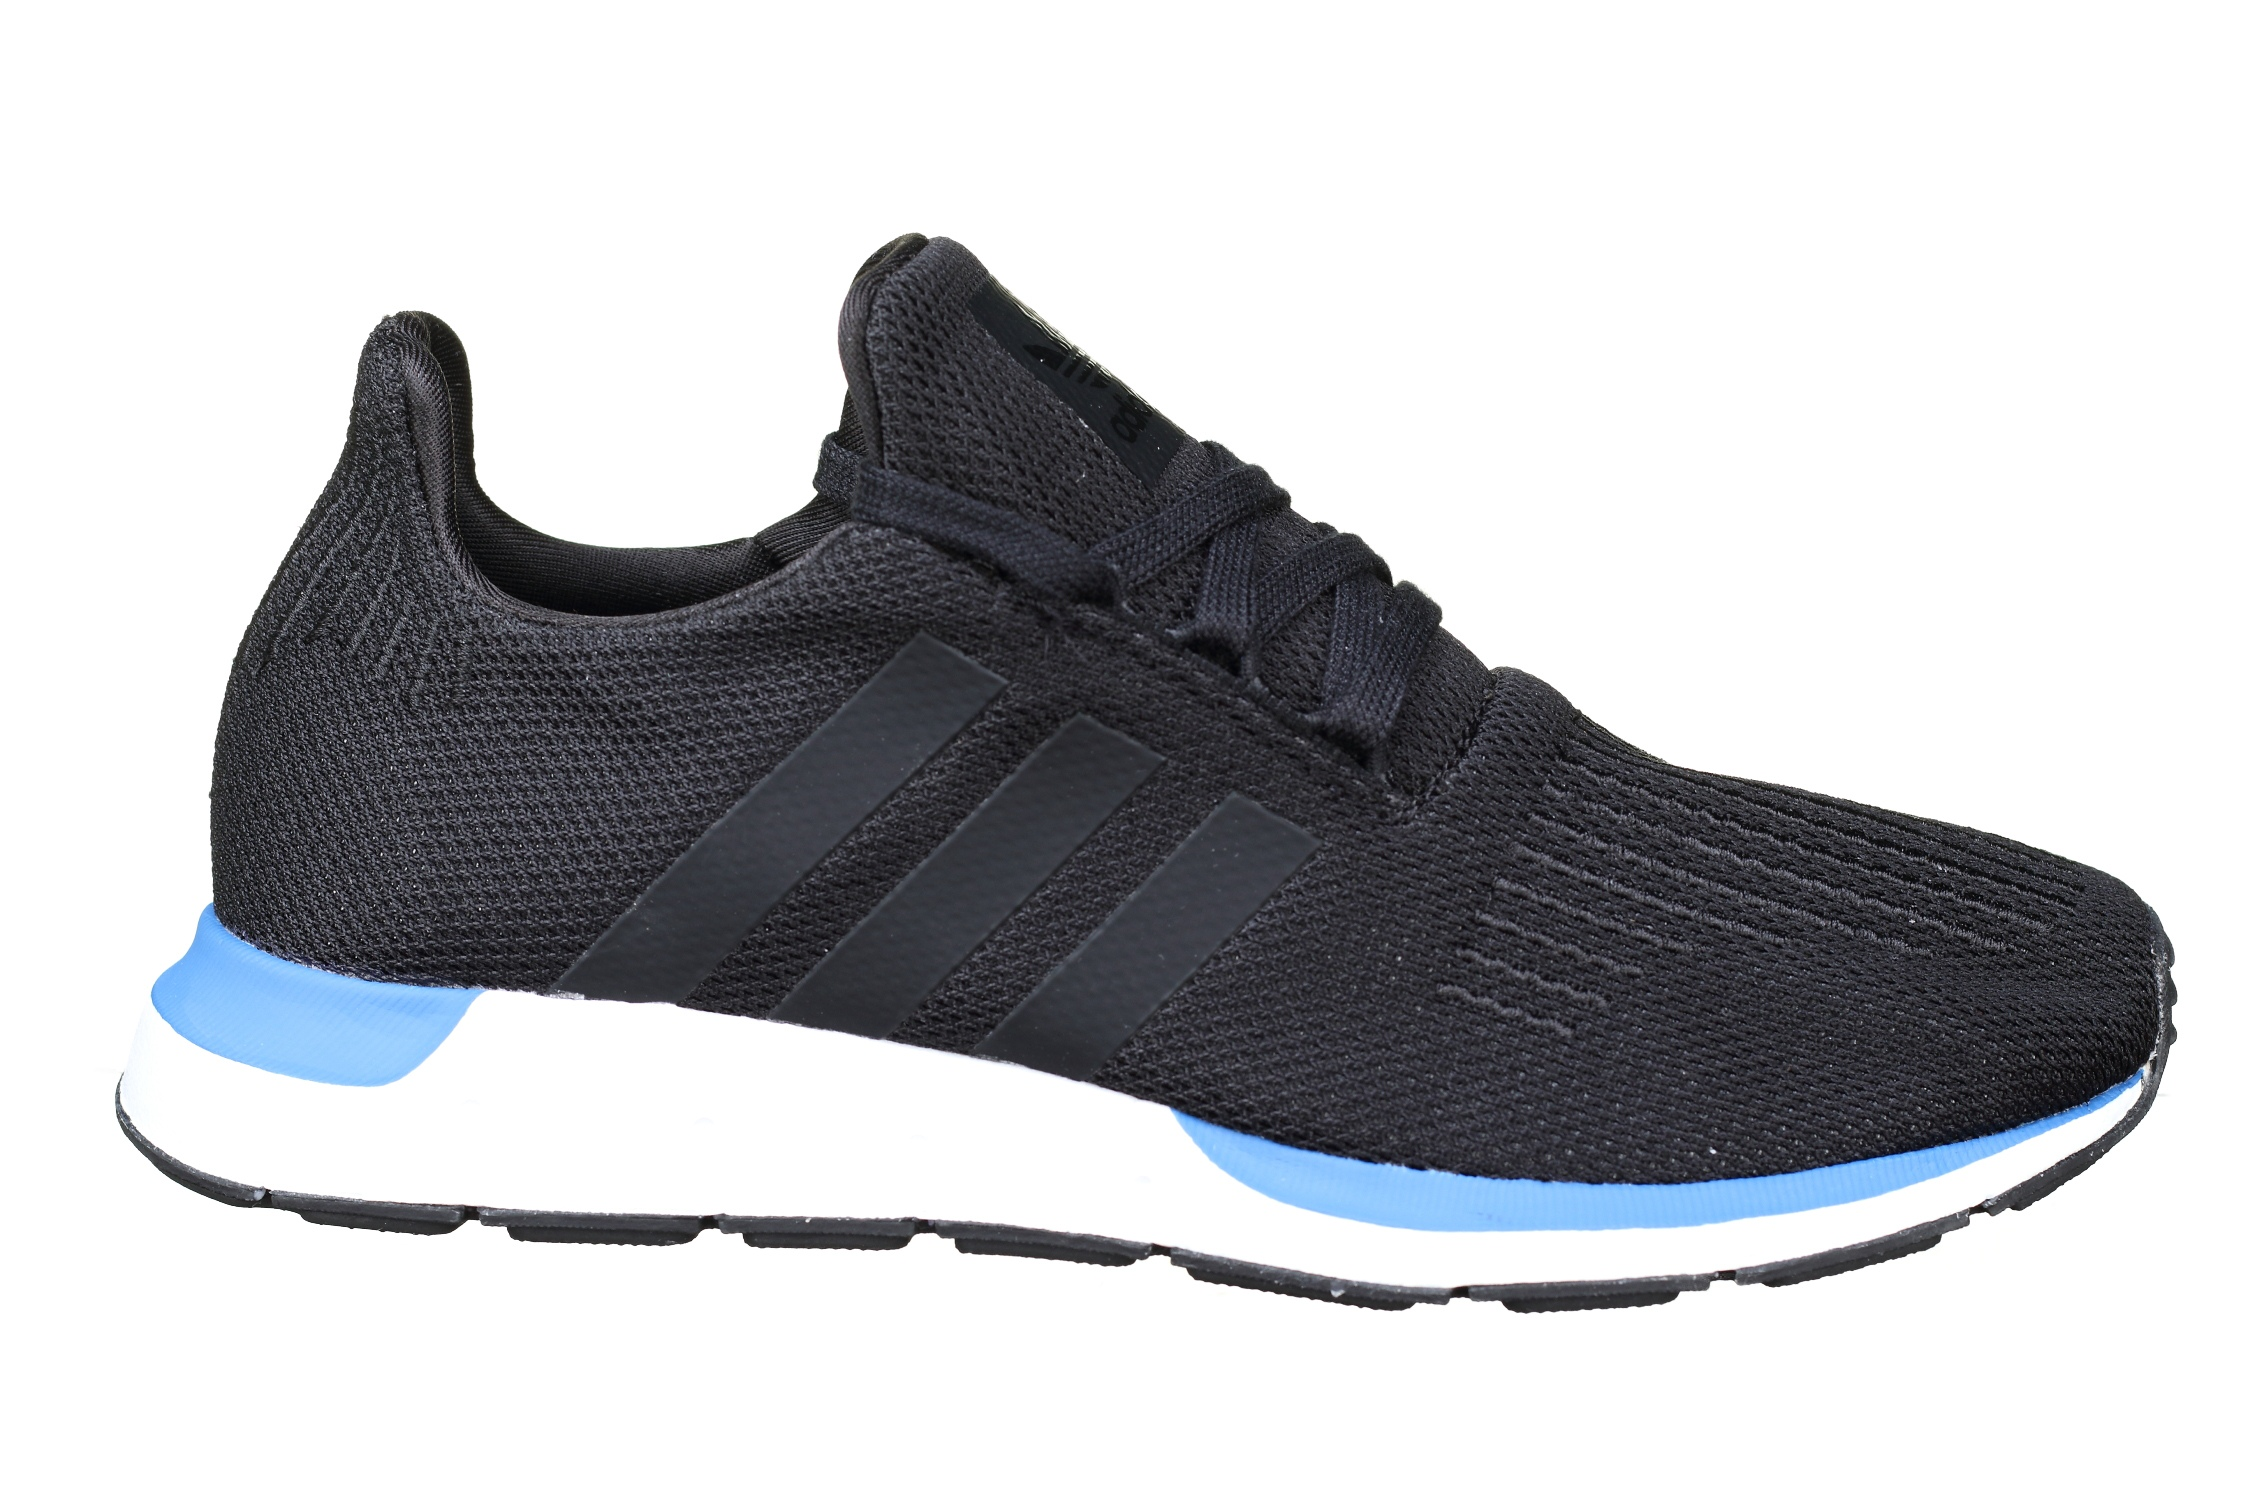 http://www.leadermode.com/180257/adidas-swift-run-j-ee7025-noir.jpg